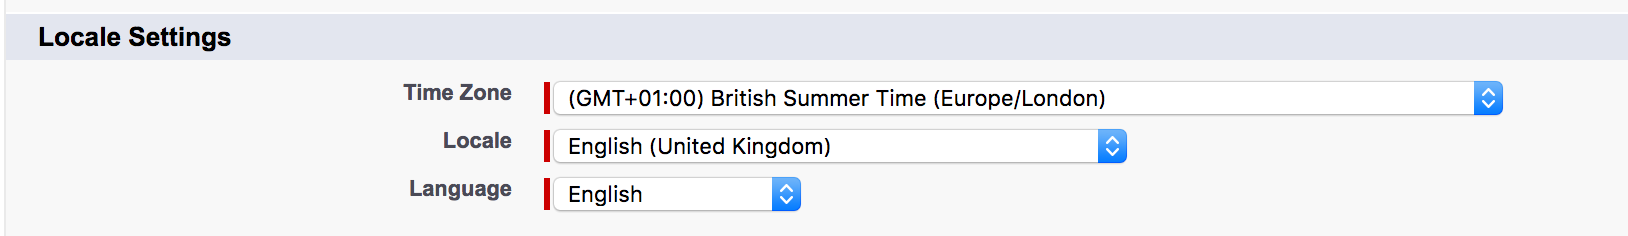 Screenshot of Time Zone section in Salesforce